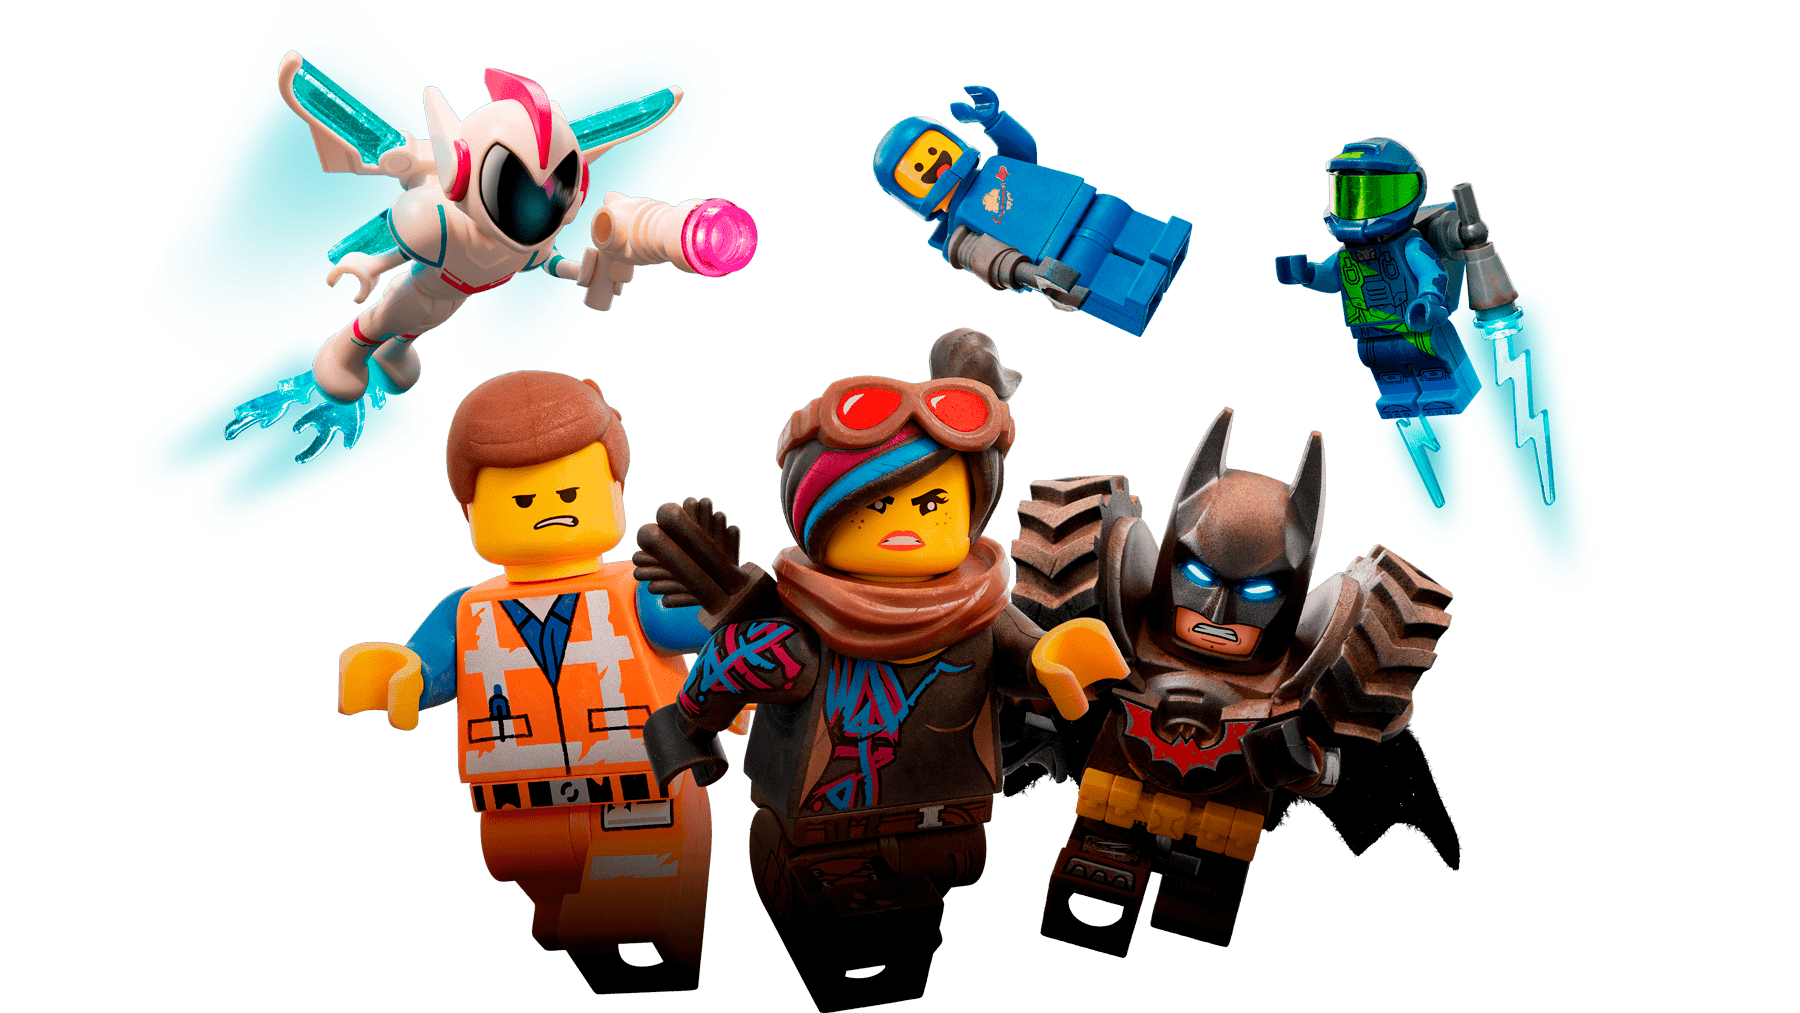 The Lego Movie 2 Time To Go Where No Brick Has Gone Before